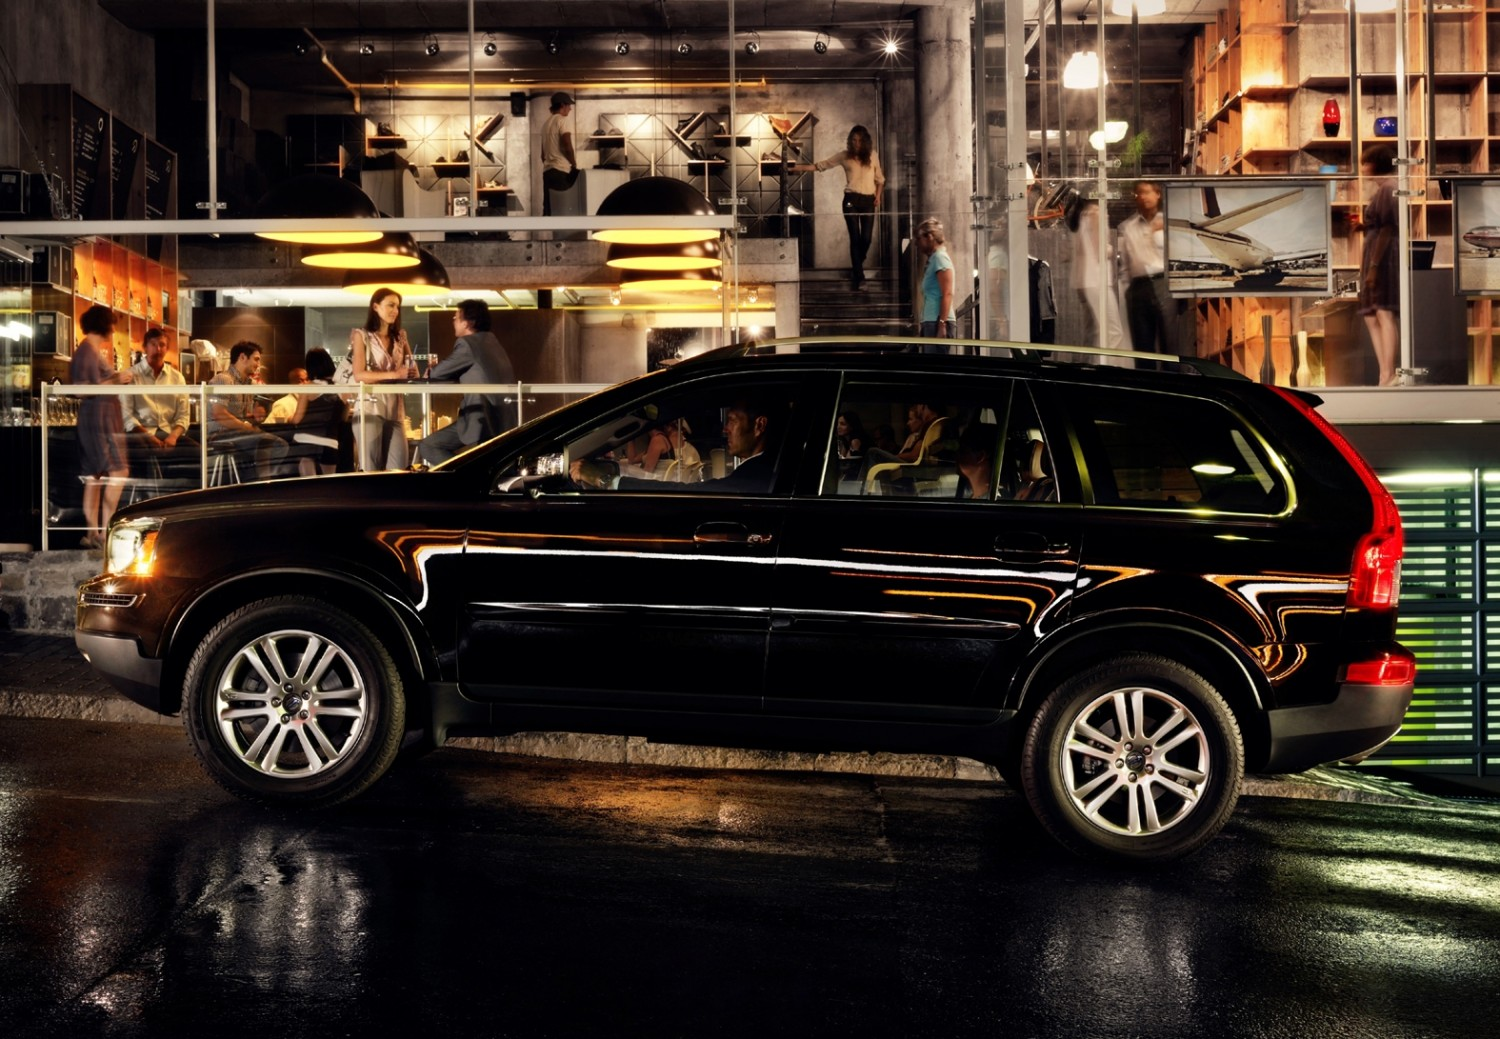 volvo xc90 used car review